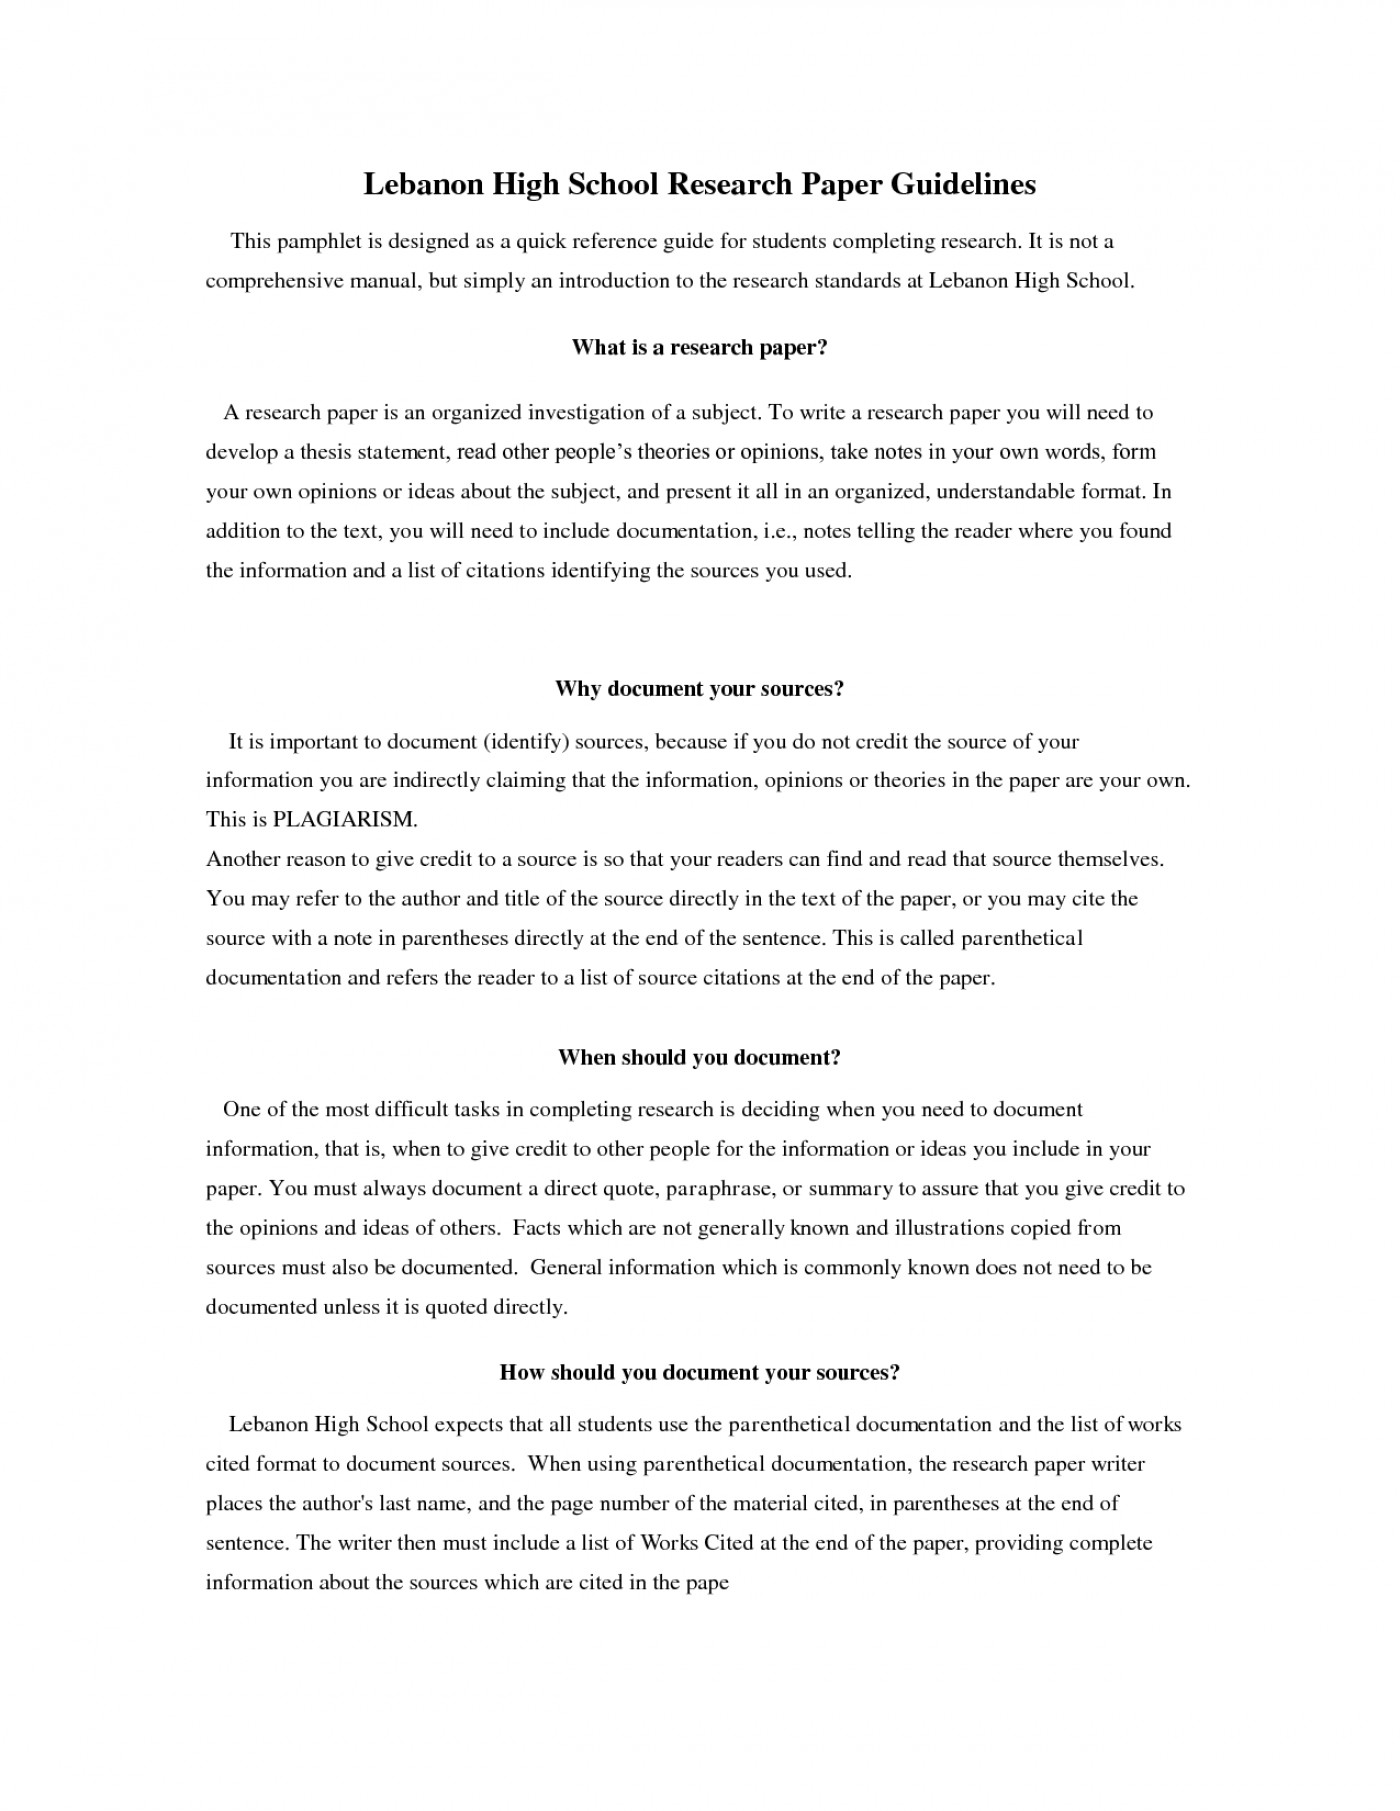 024 Research Paper Good Singular Topic Topics History Reddit Argumentative About Sports 1400